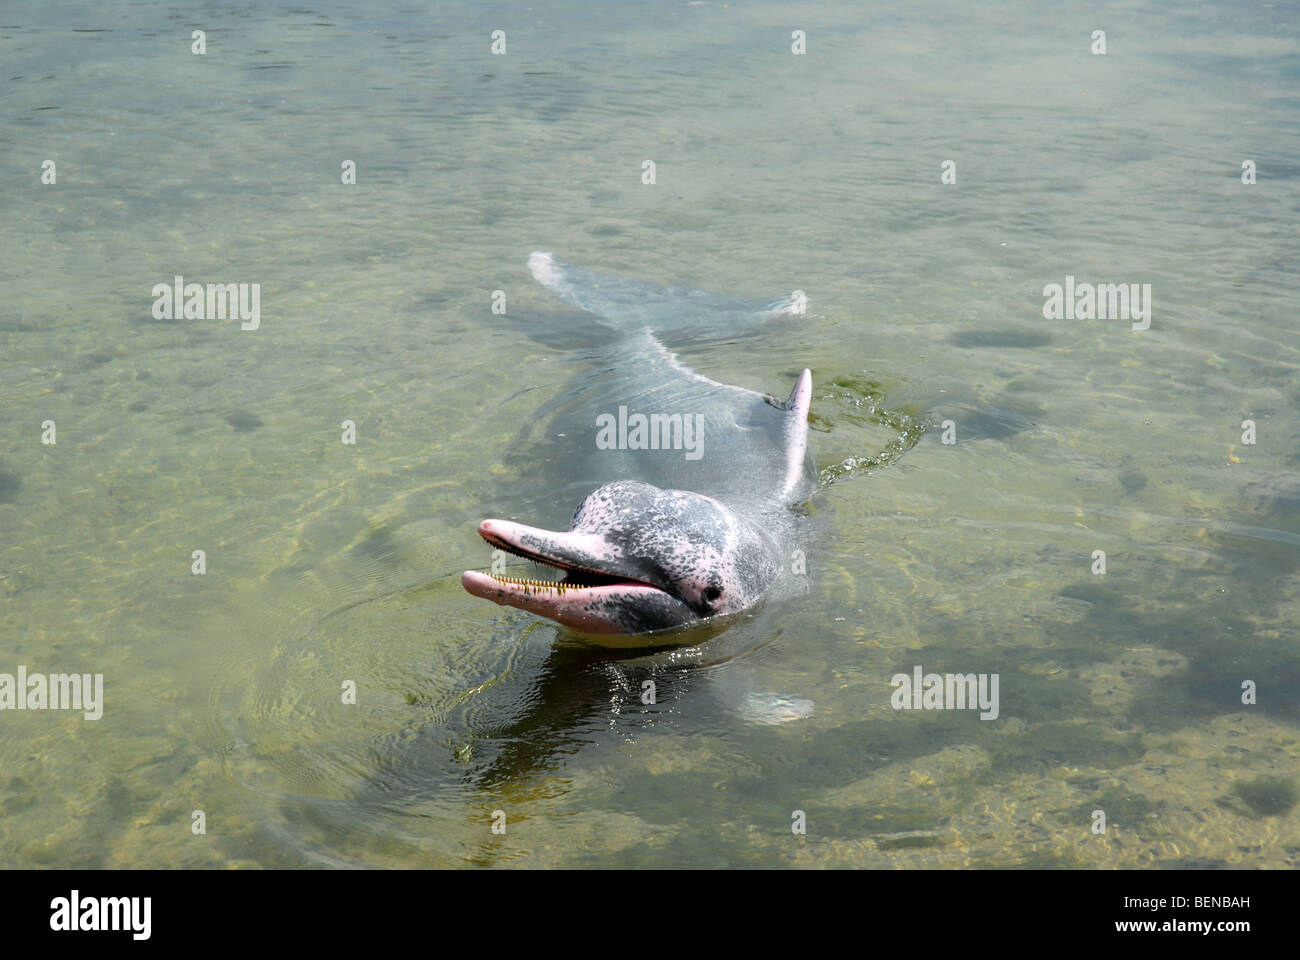 Indo-Pacific Humpback Dolphin, or Pink Dolphin, Dolphin Lagoon, Sentosa Island, Singapore - Stock Image